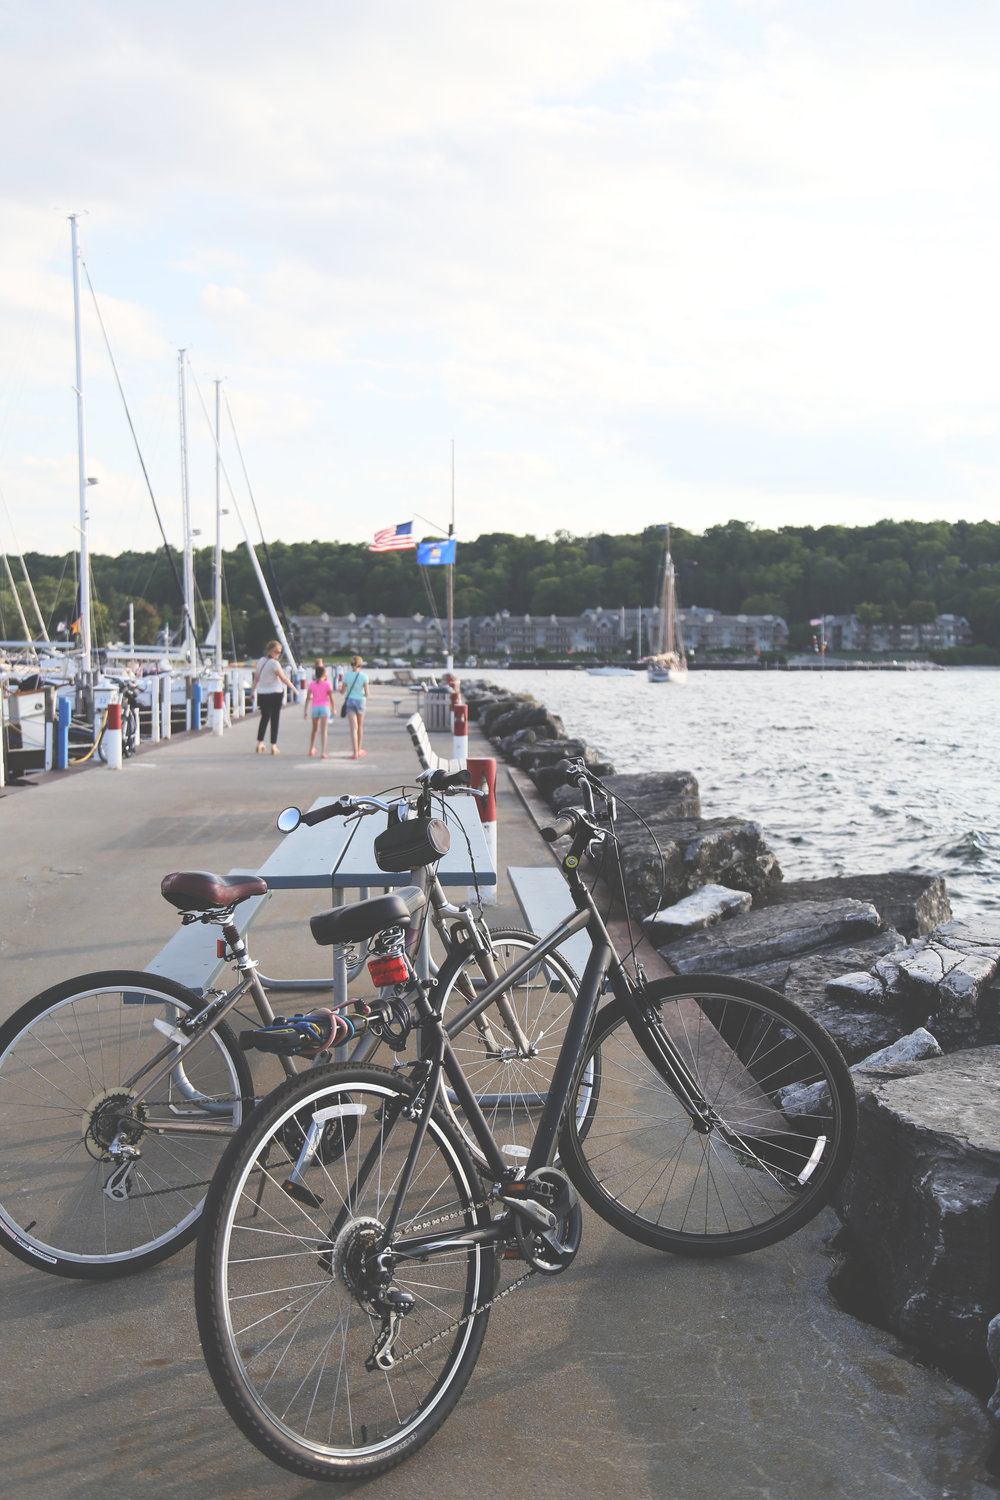 Boats and bikes. But look at that light!